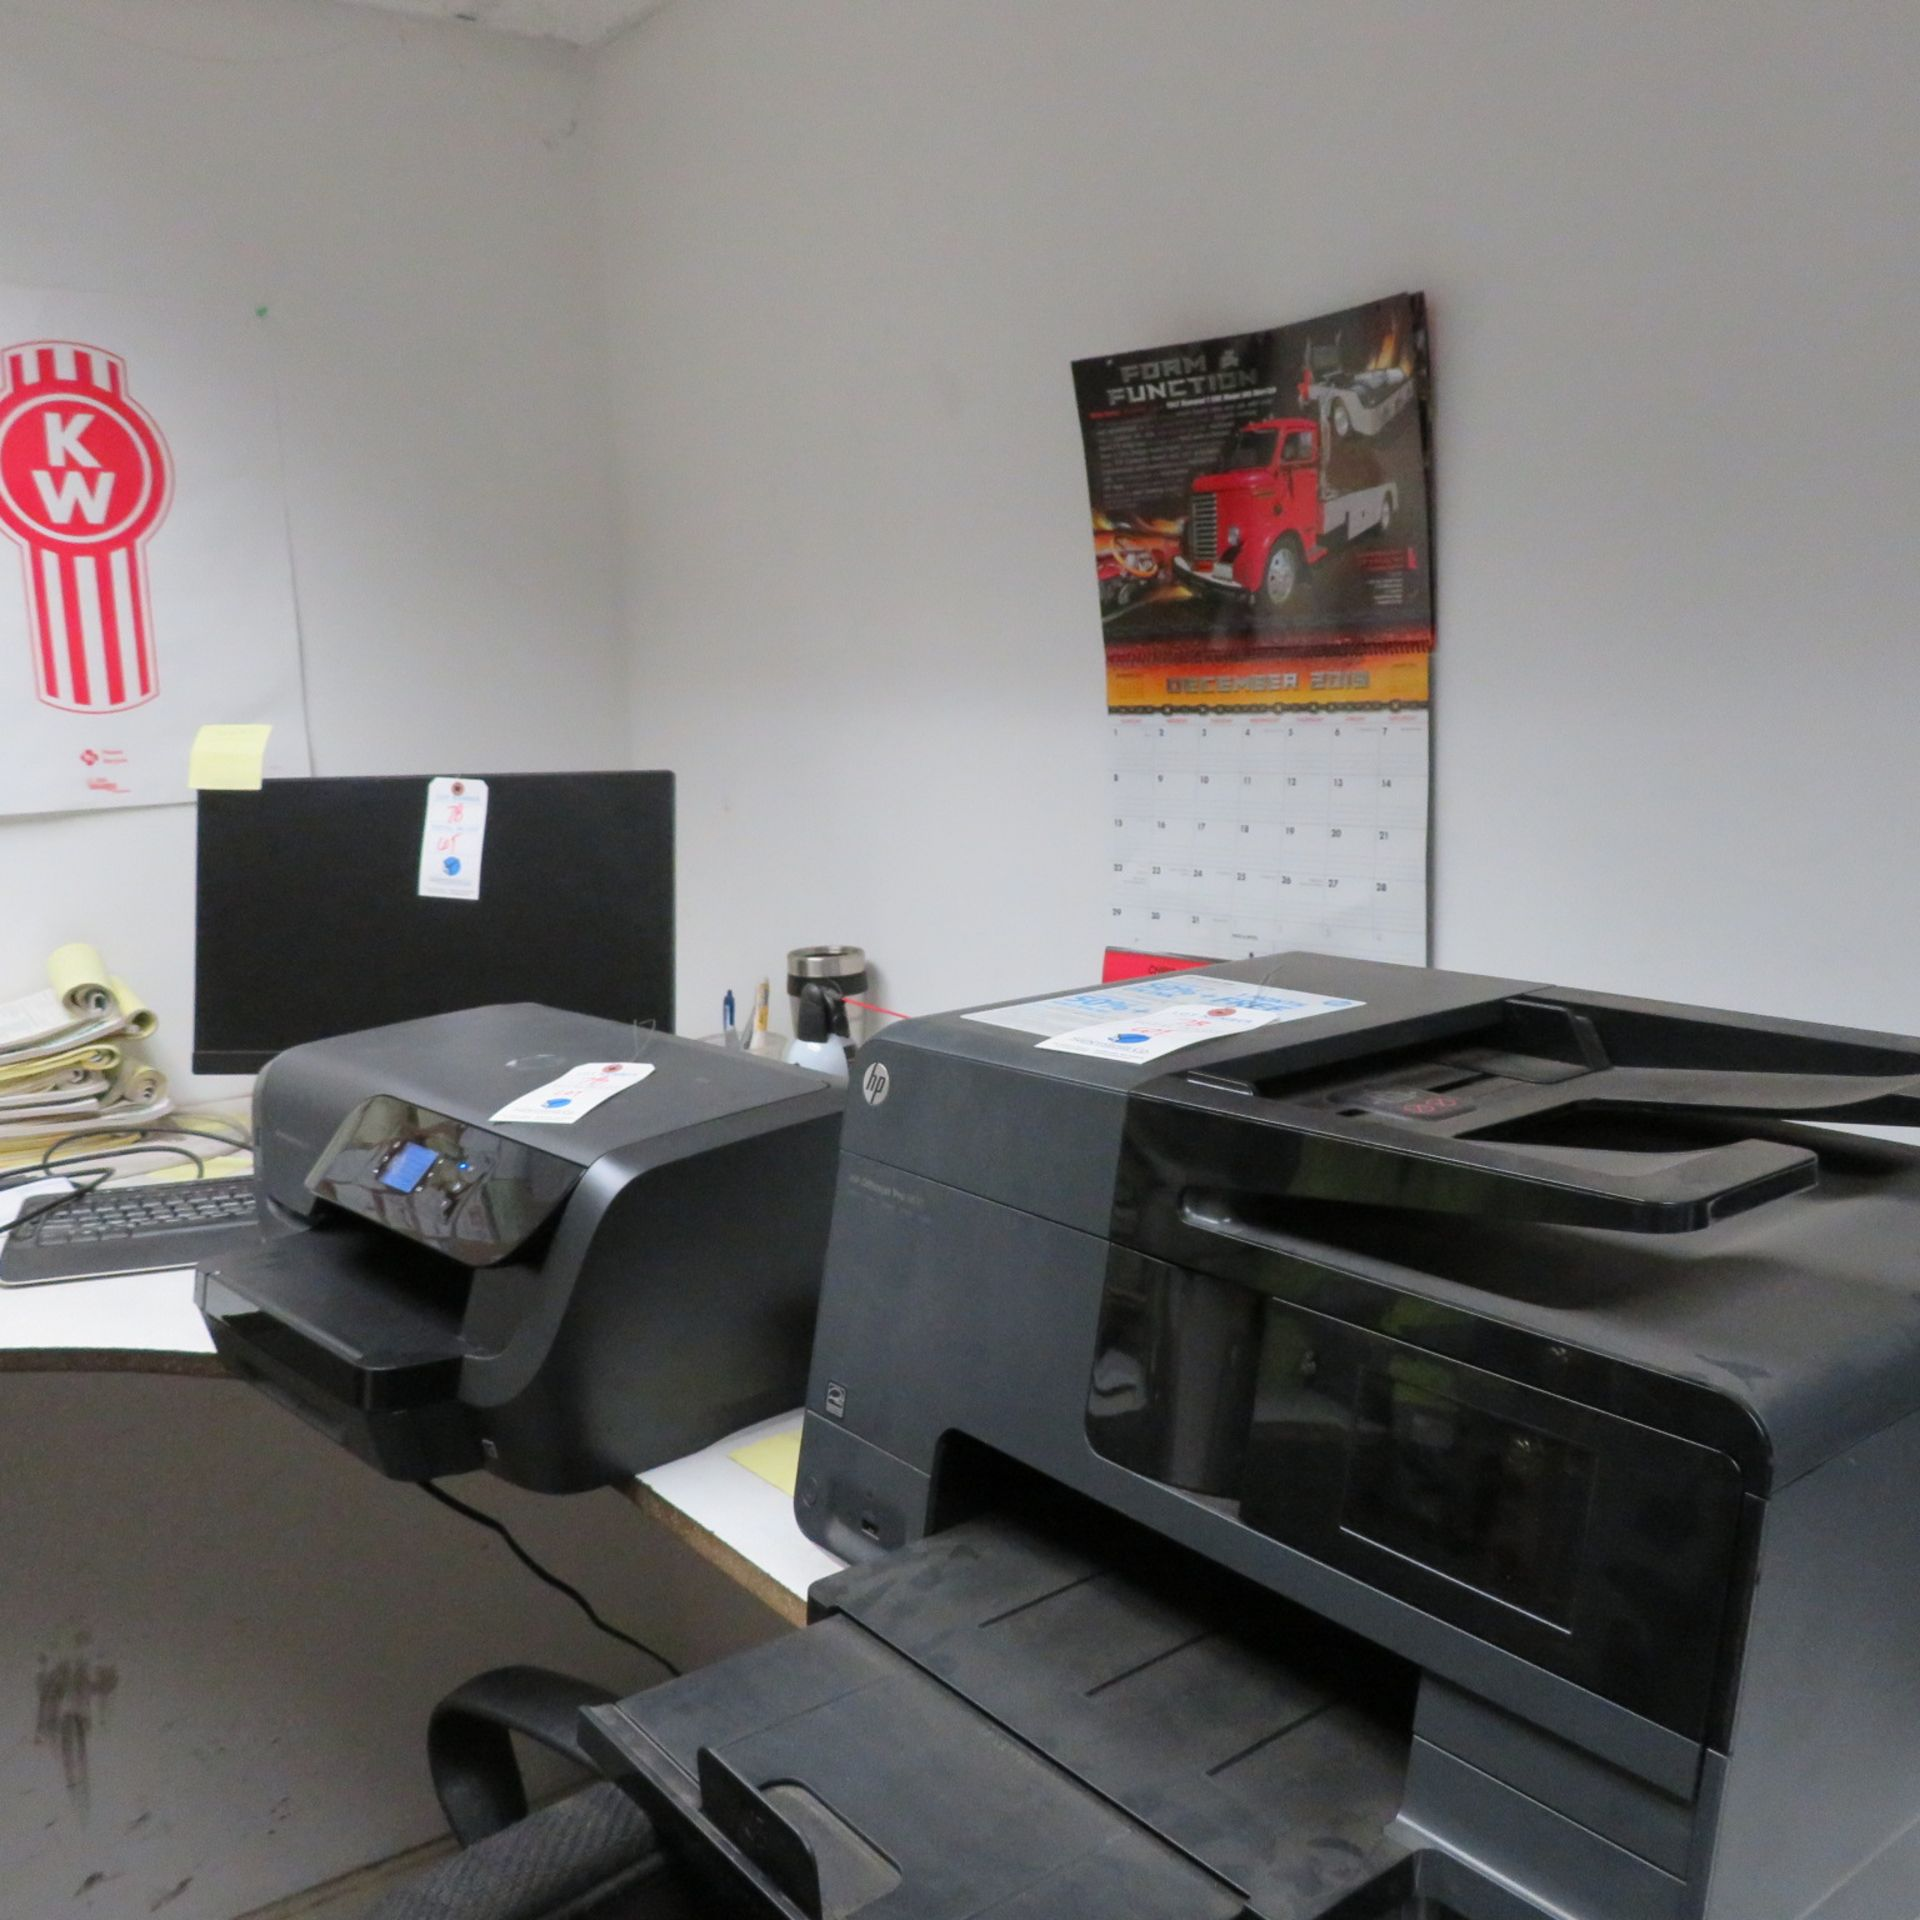 Lot 78 - {LOT} In Office c/o: 2 Printers, Monitor, (2) Mounted Monitors, Shippers Desk & 2 Stools (ONLY ITEMS